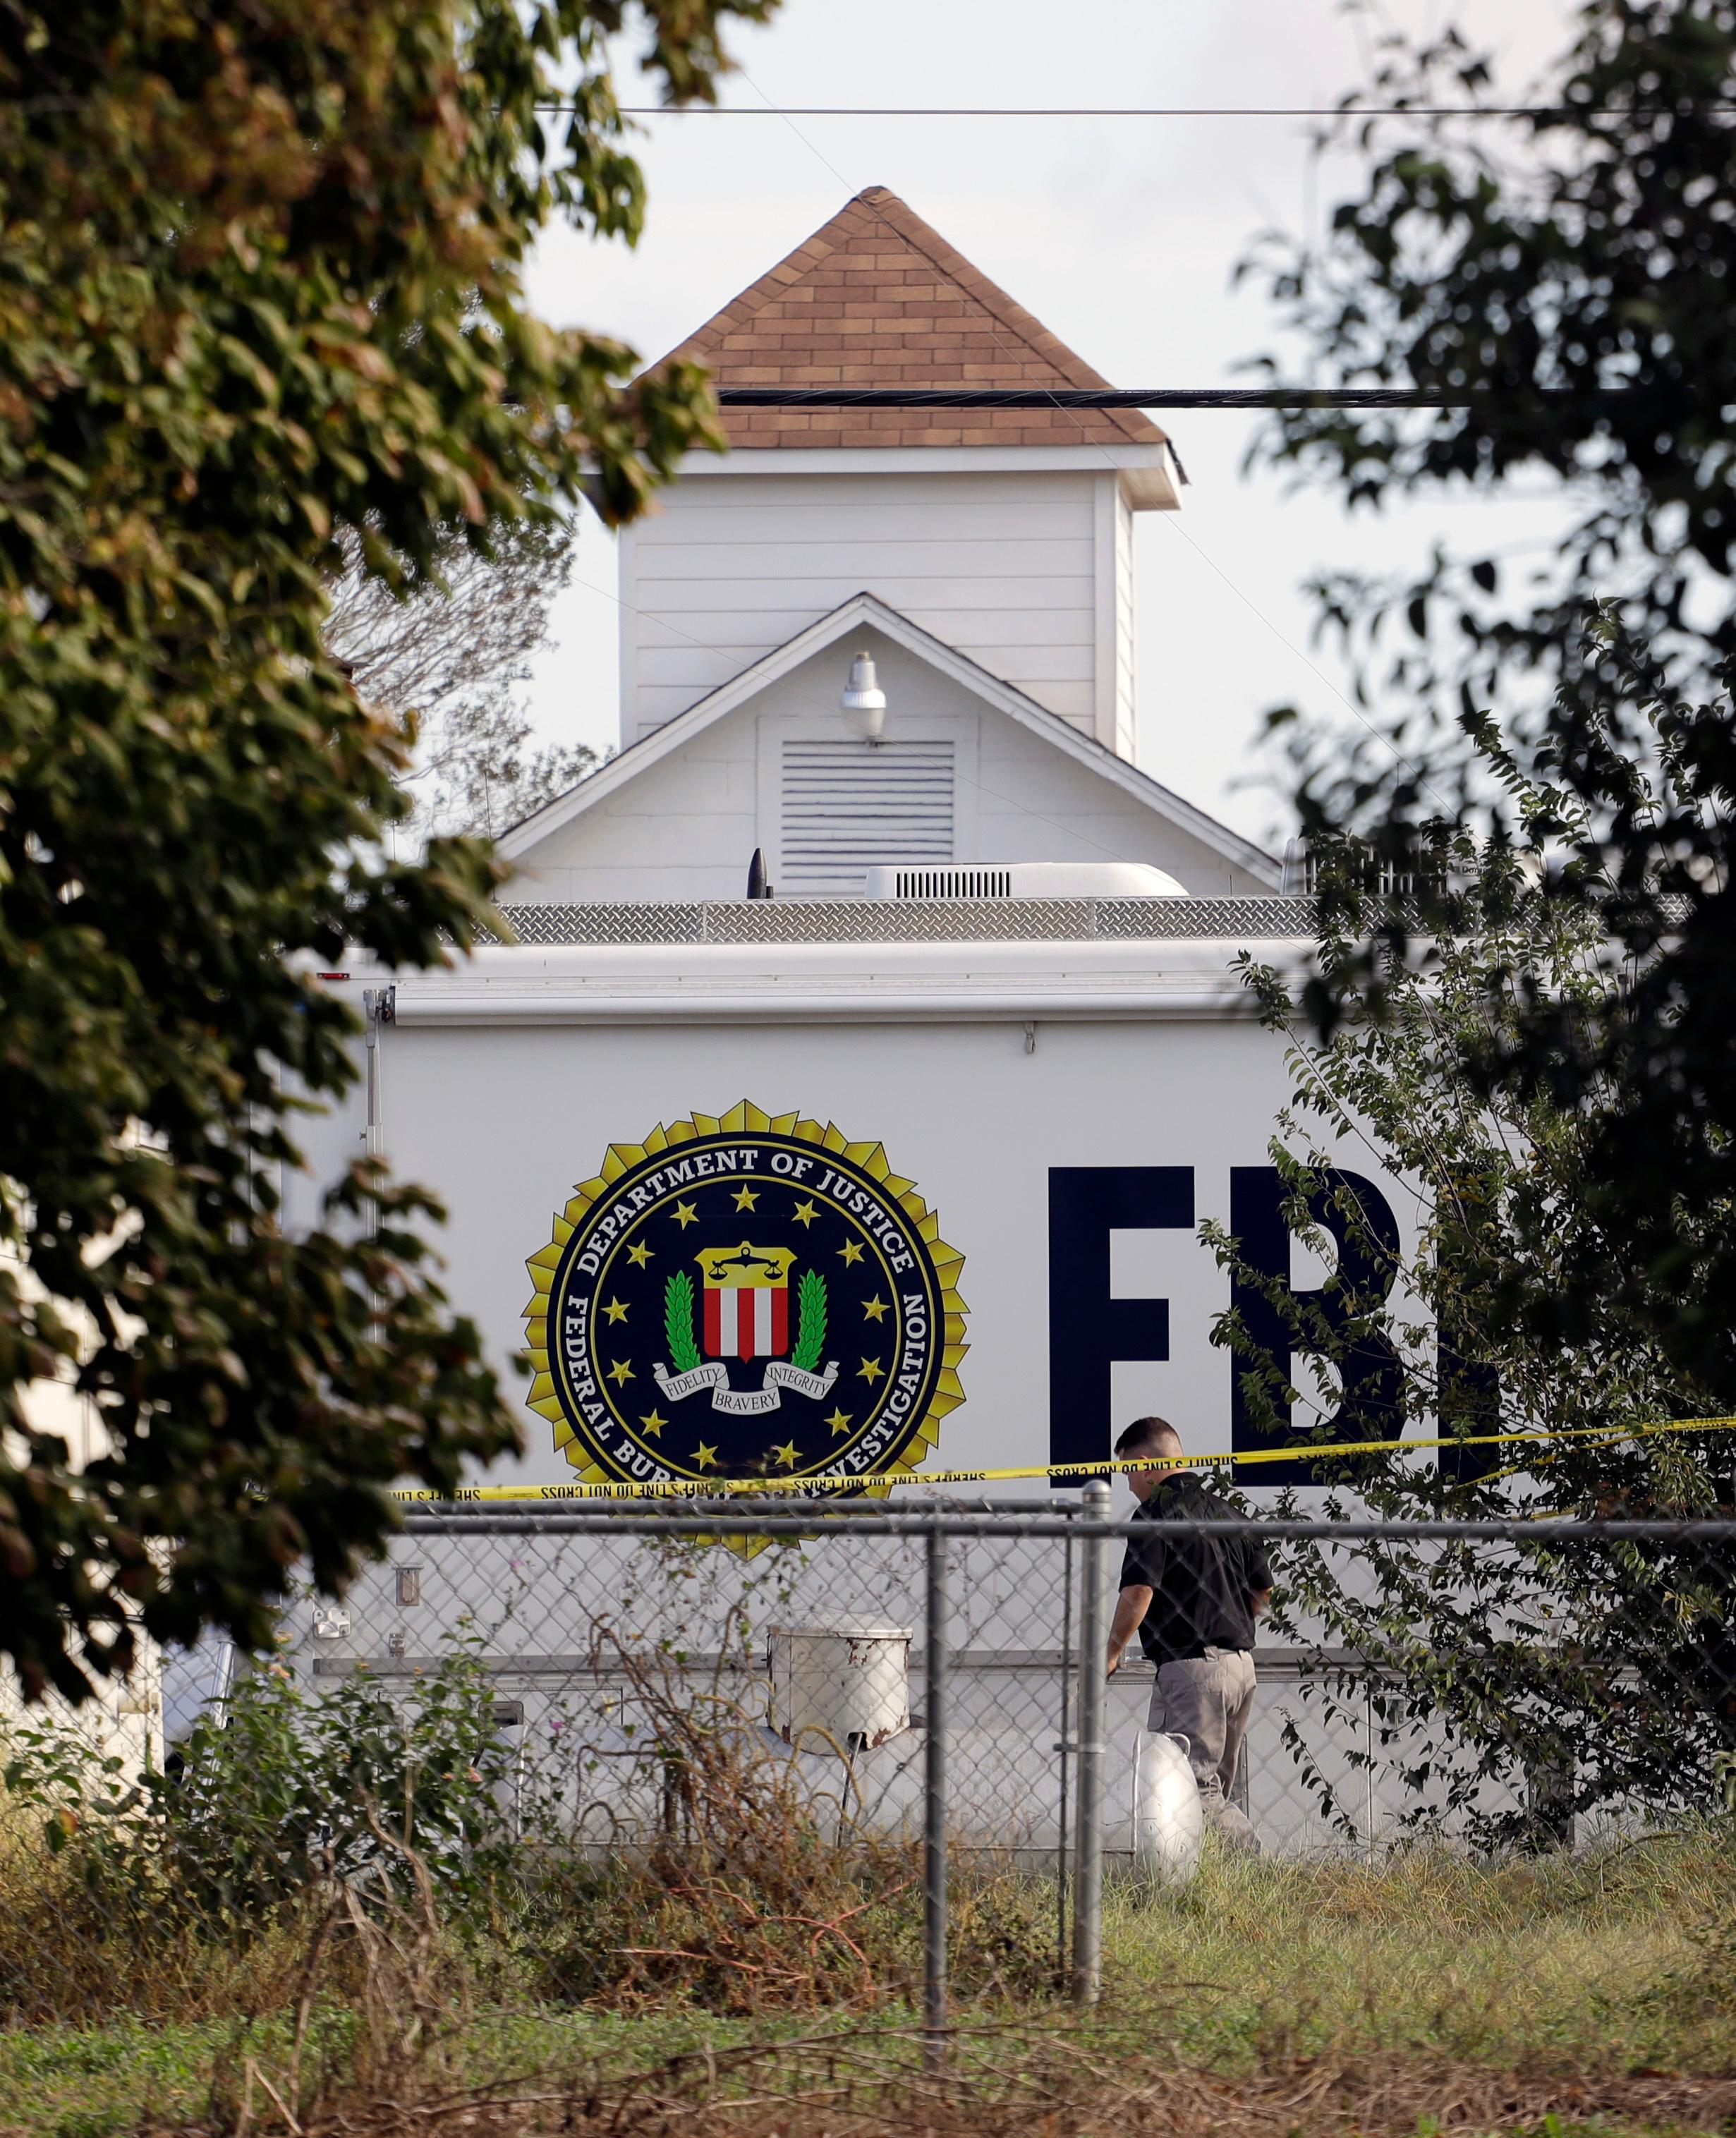 A law enforcement official investigates the scene of a shooting at the First Baptist Church of Sutherland Springs, Monday, Nov. 6, 2017, in Sutherland Springs, Texas. A man opened fire inside the church in the small South Texas community on Sunday, killing and wounding many. (AP Photo/Eric Gay)